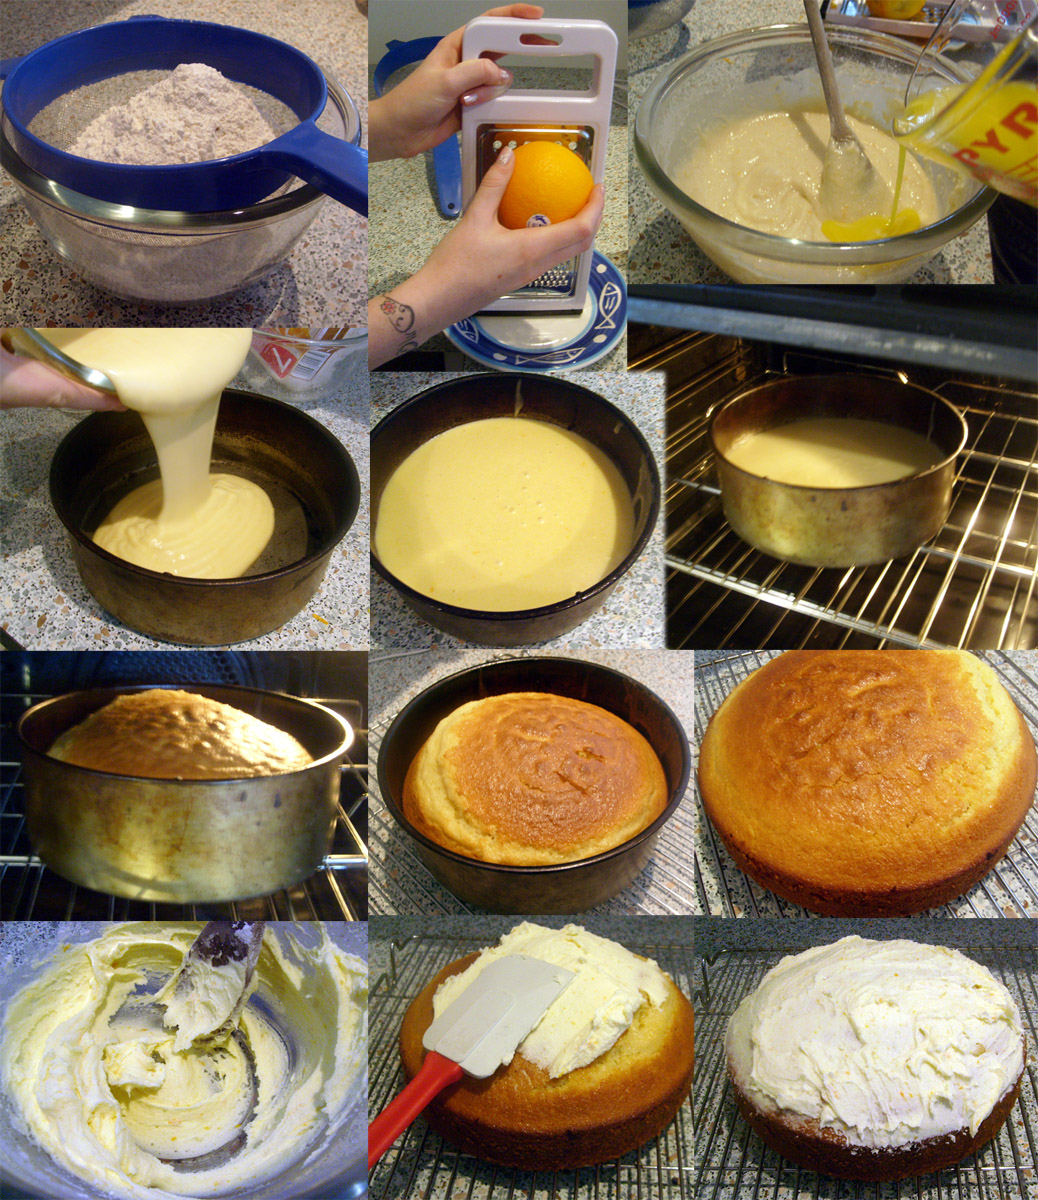 Process essay on how to bake a cake - our work The Process of Cake ...